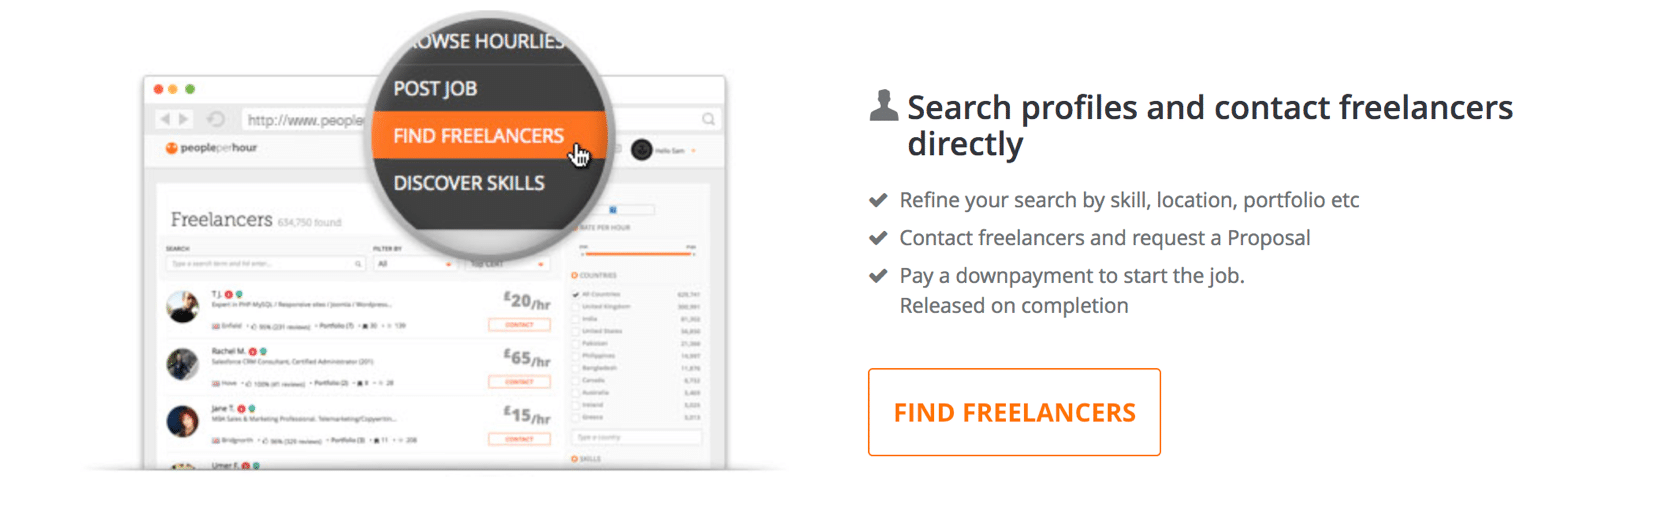 Contact information of Freelancers